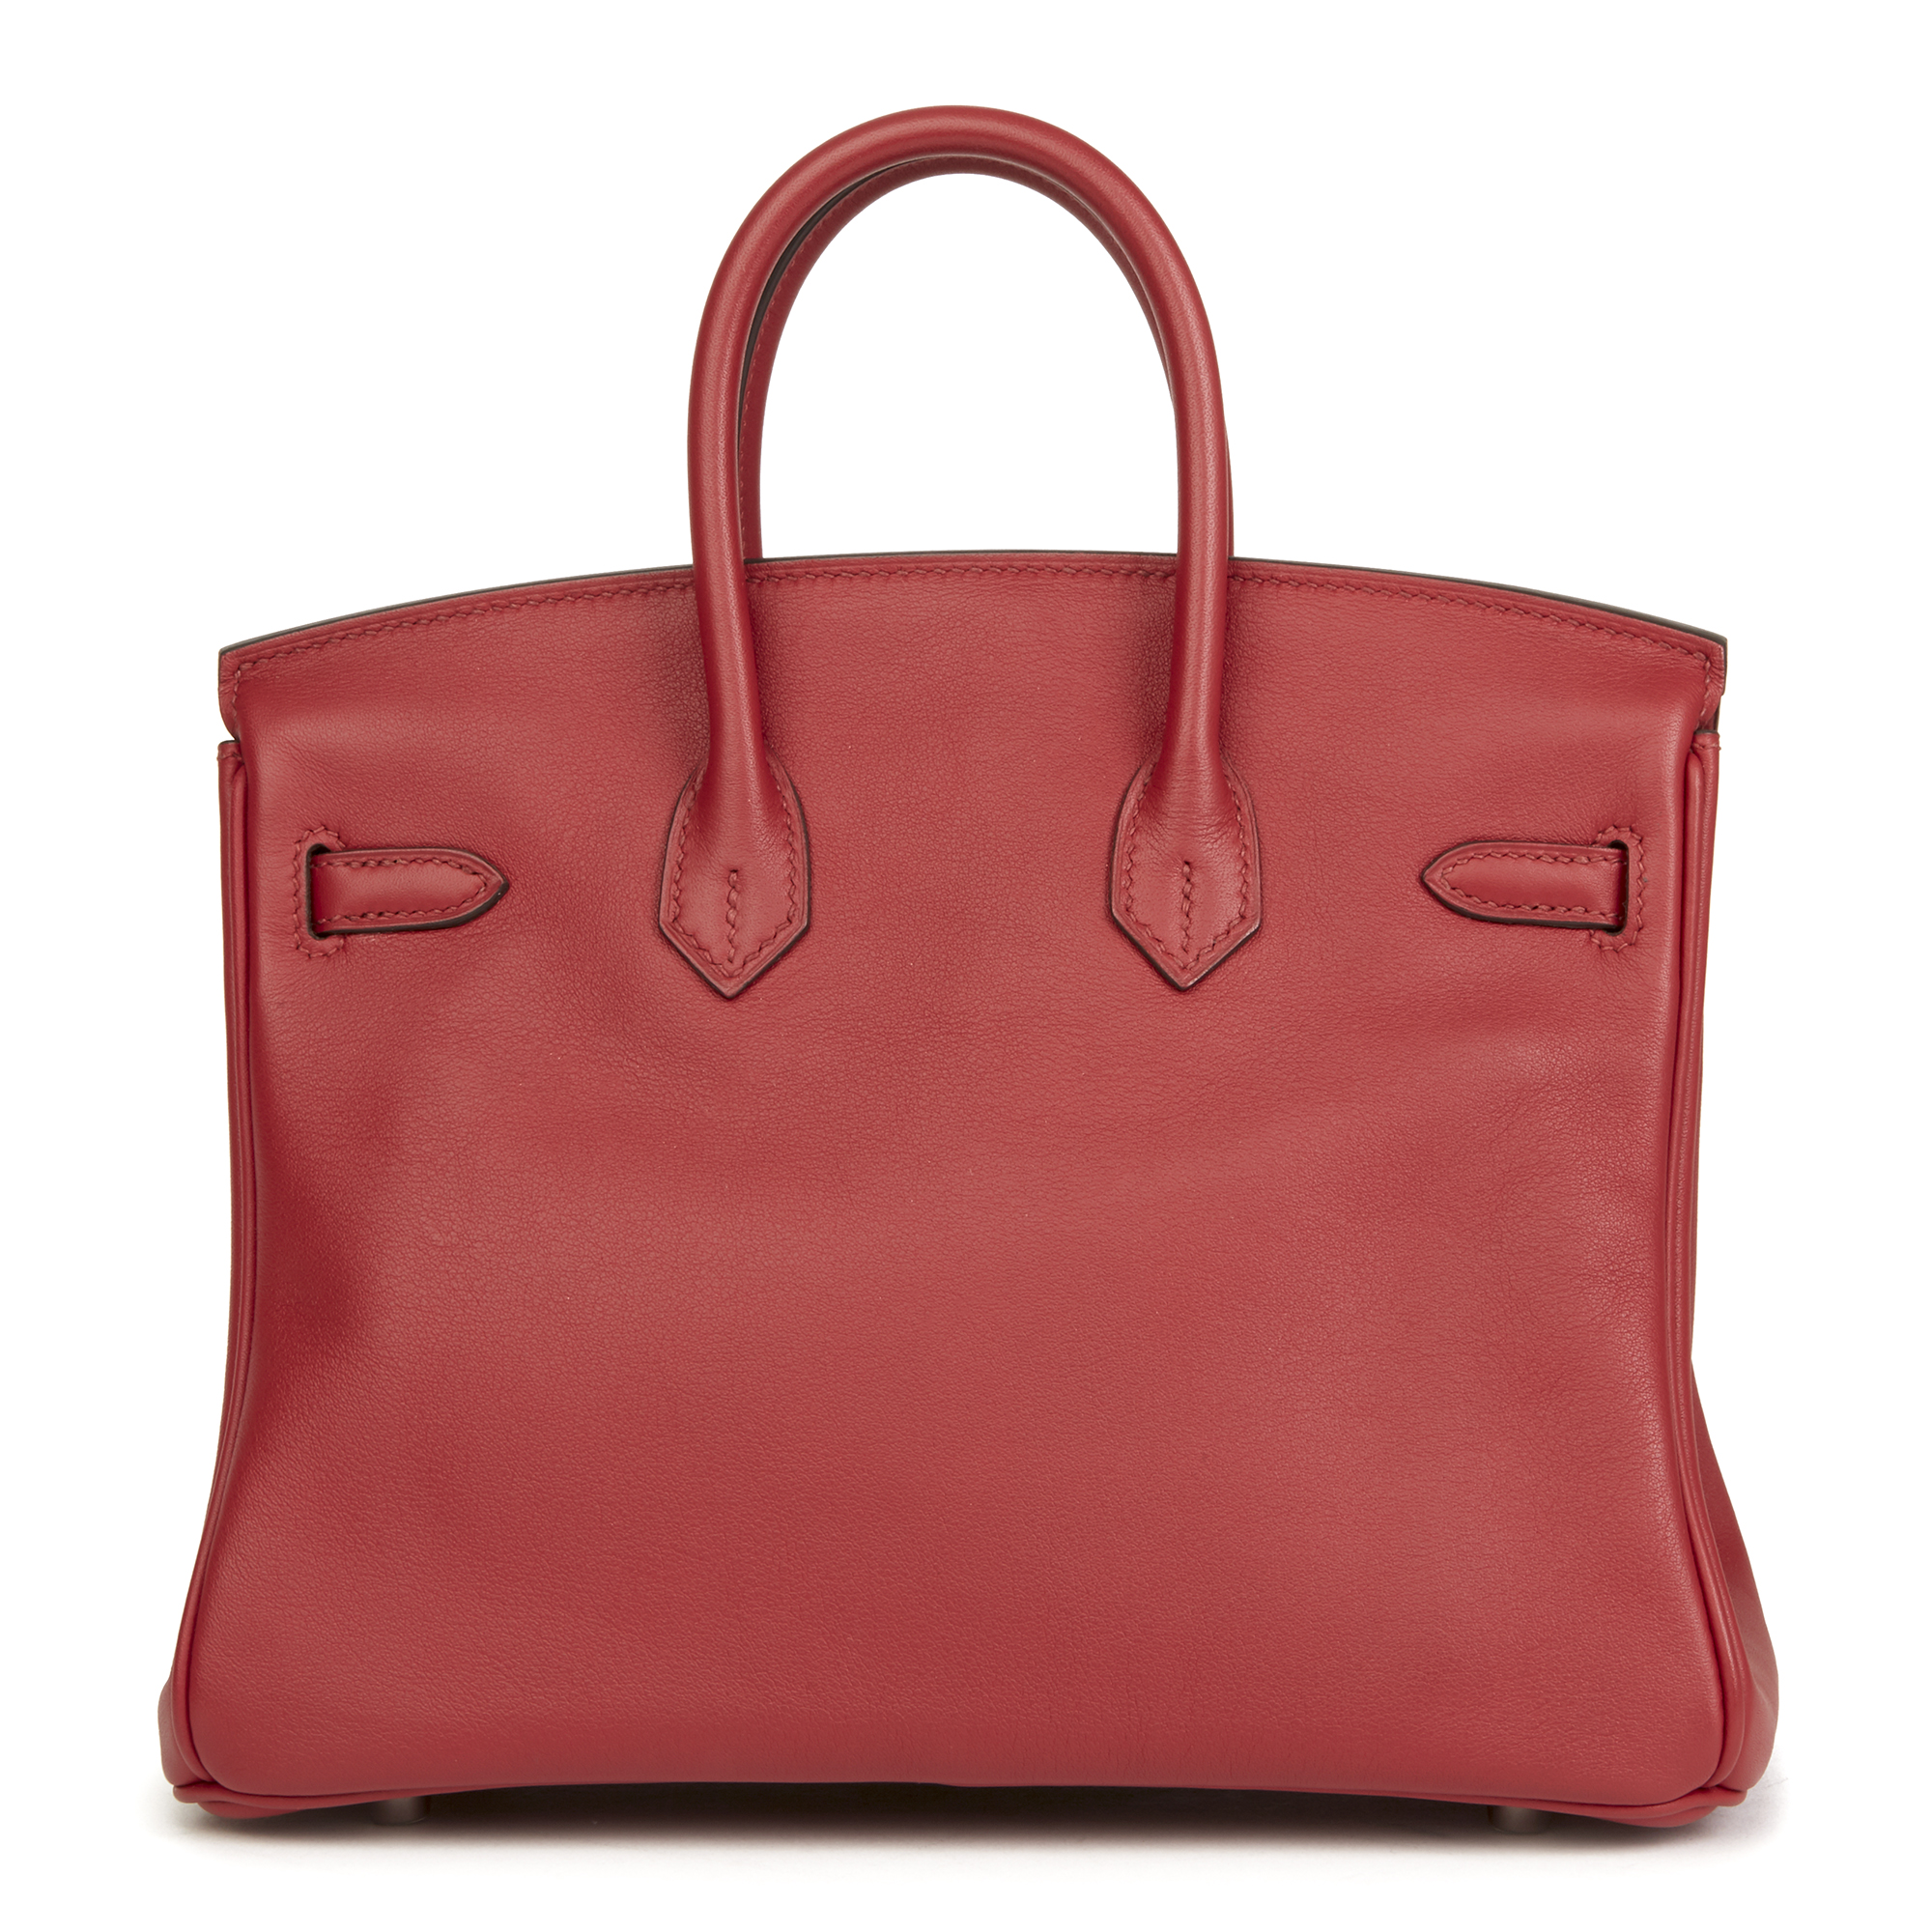 de0ae5cde30a Details about HERMÈS ROUGE GRENAT SWIFT LEATHER BIRKIN 25CM HB2566